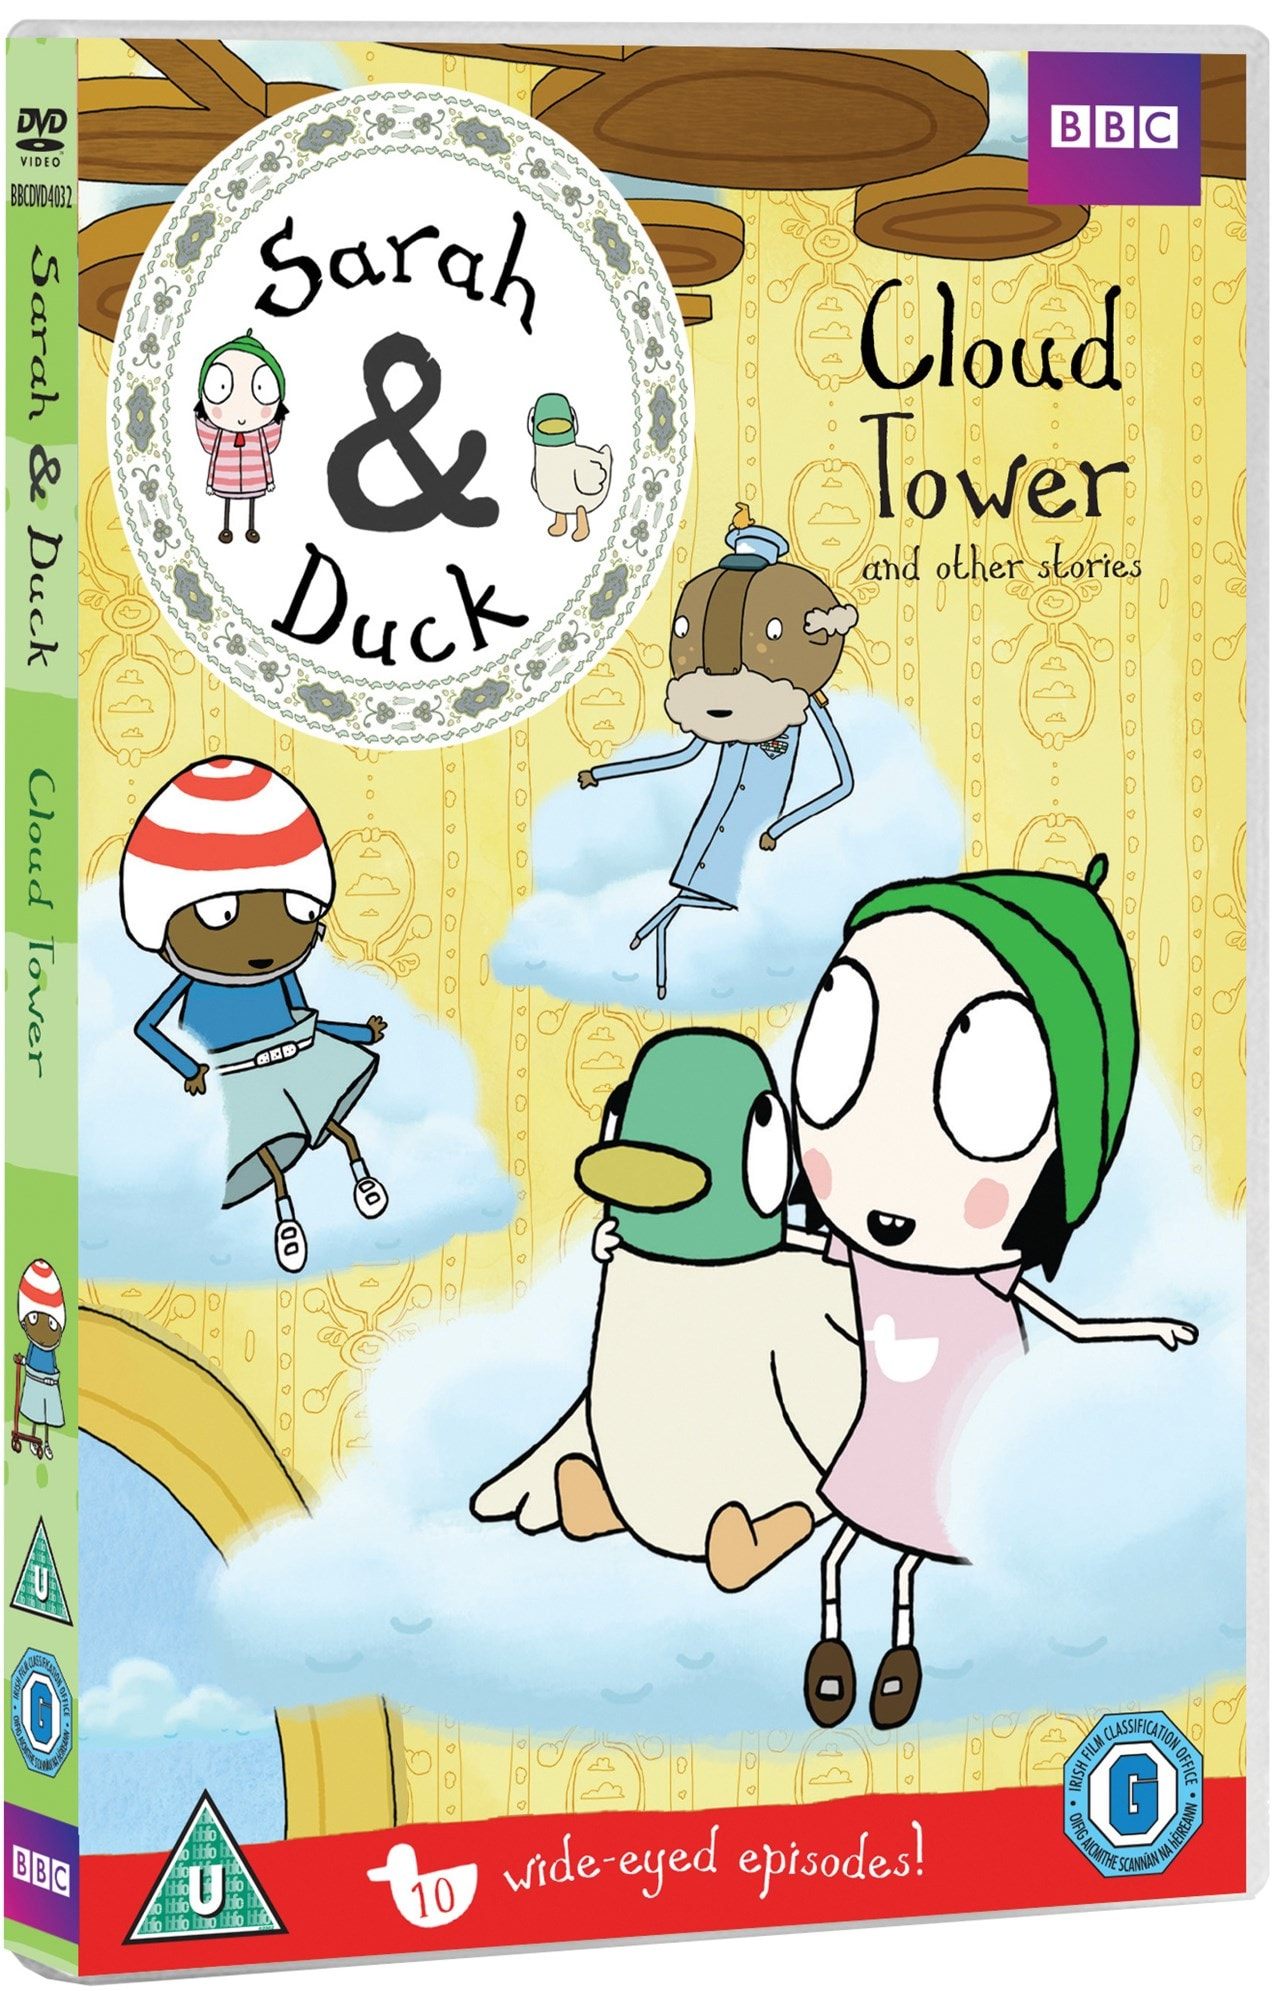 Sarah & Duck: Cloud Tower and Other Stories - 2